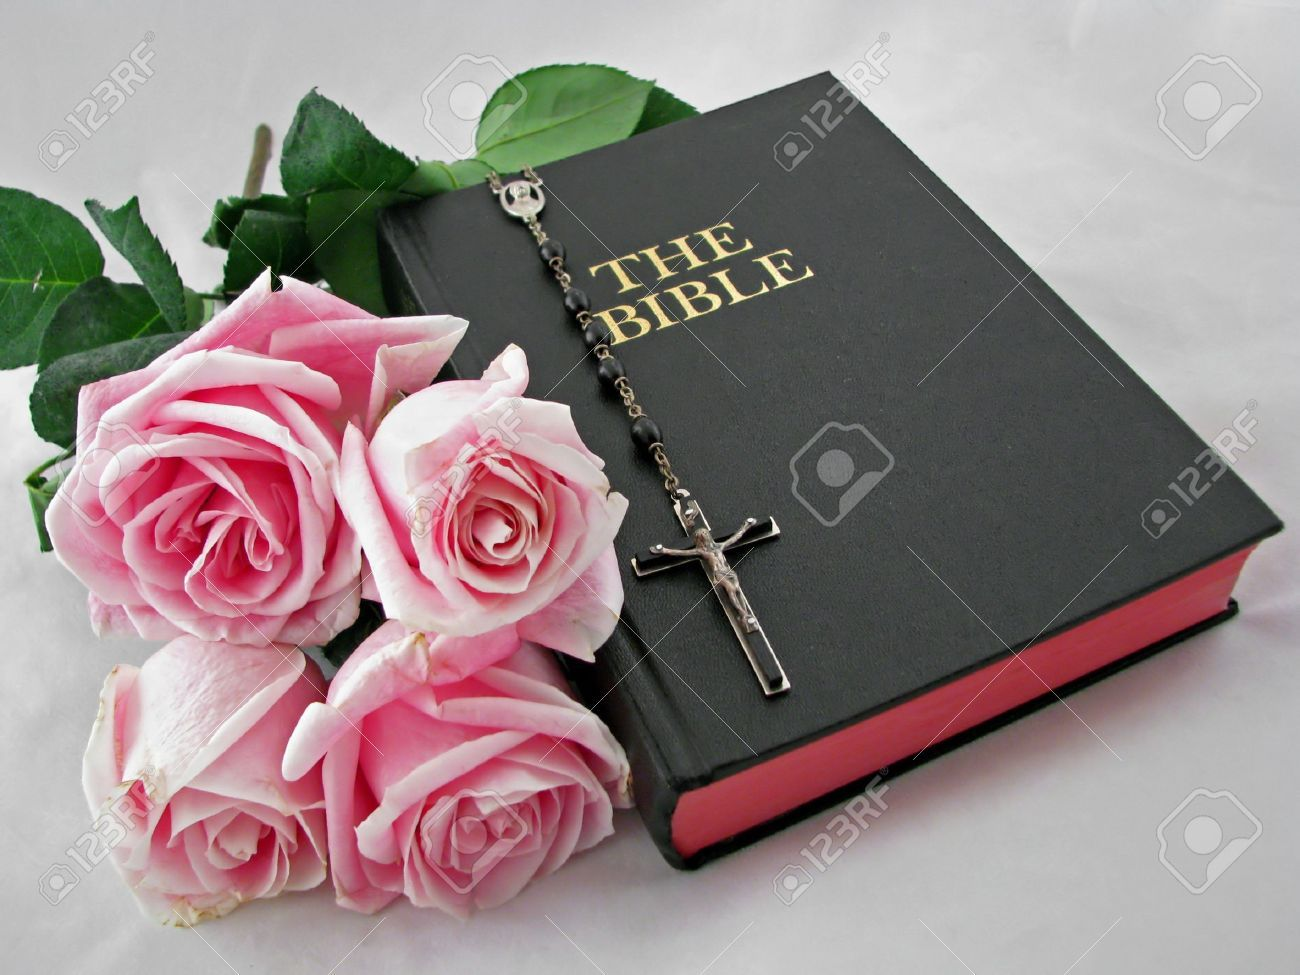 Pink bibles google search bibles pinterest bible scriptures for a funeral service can be encouraging for words of comfort wisdom and assurance during a difficult time of loss consider adding scripture izmirmasajfo